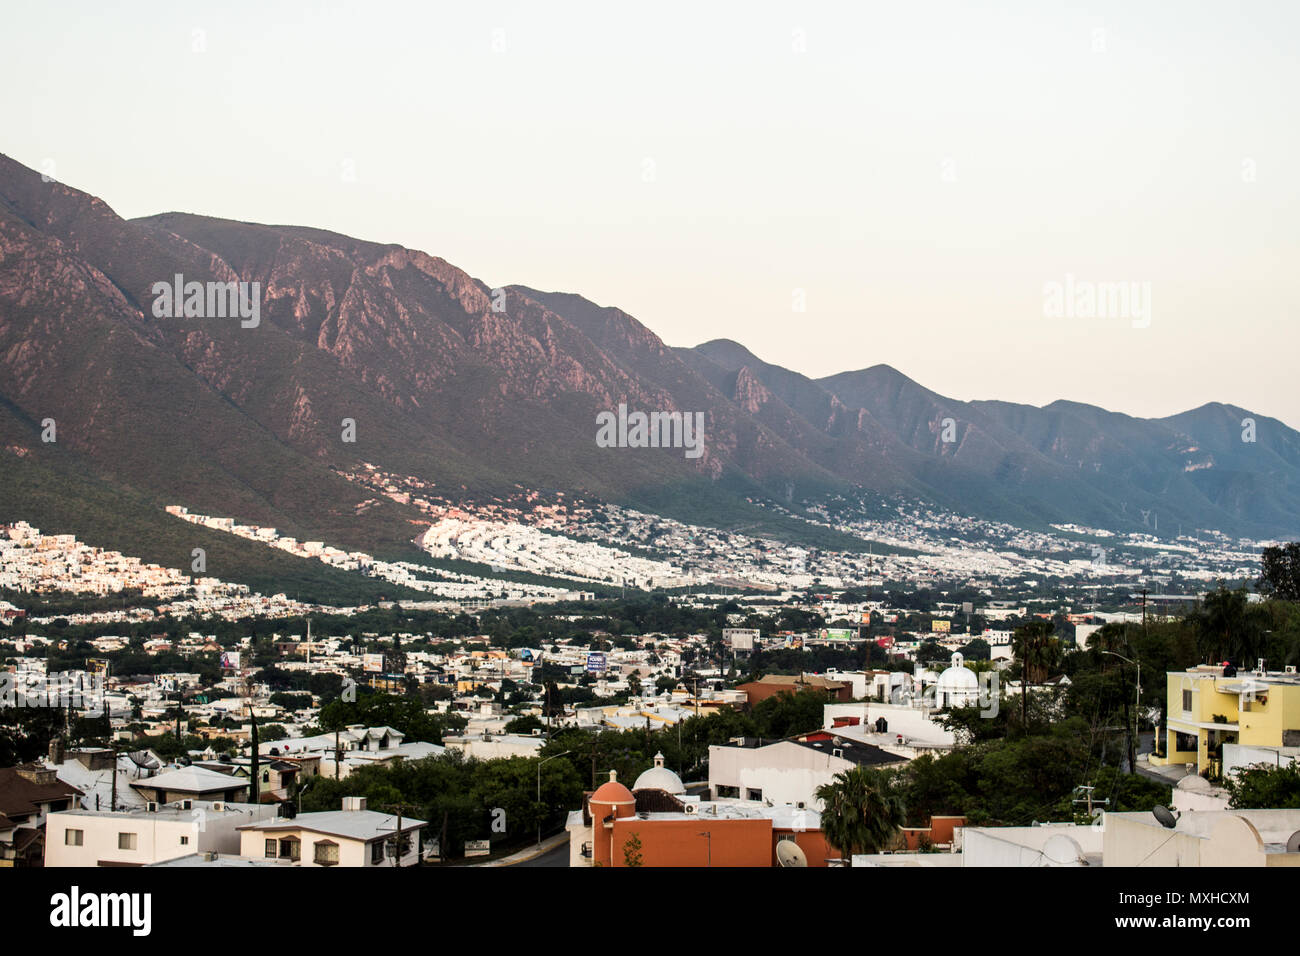 South part of the city of Monterrey, Nuevo Leon, Mexico. Stock Photo